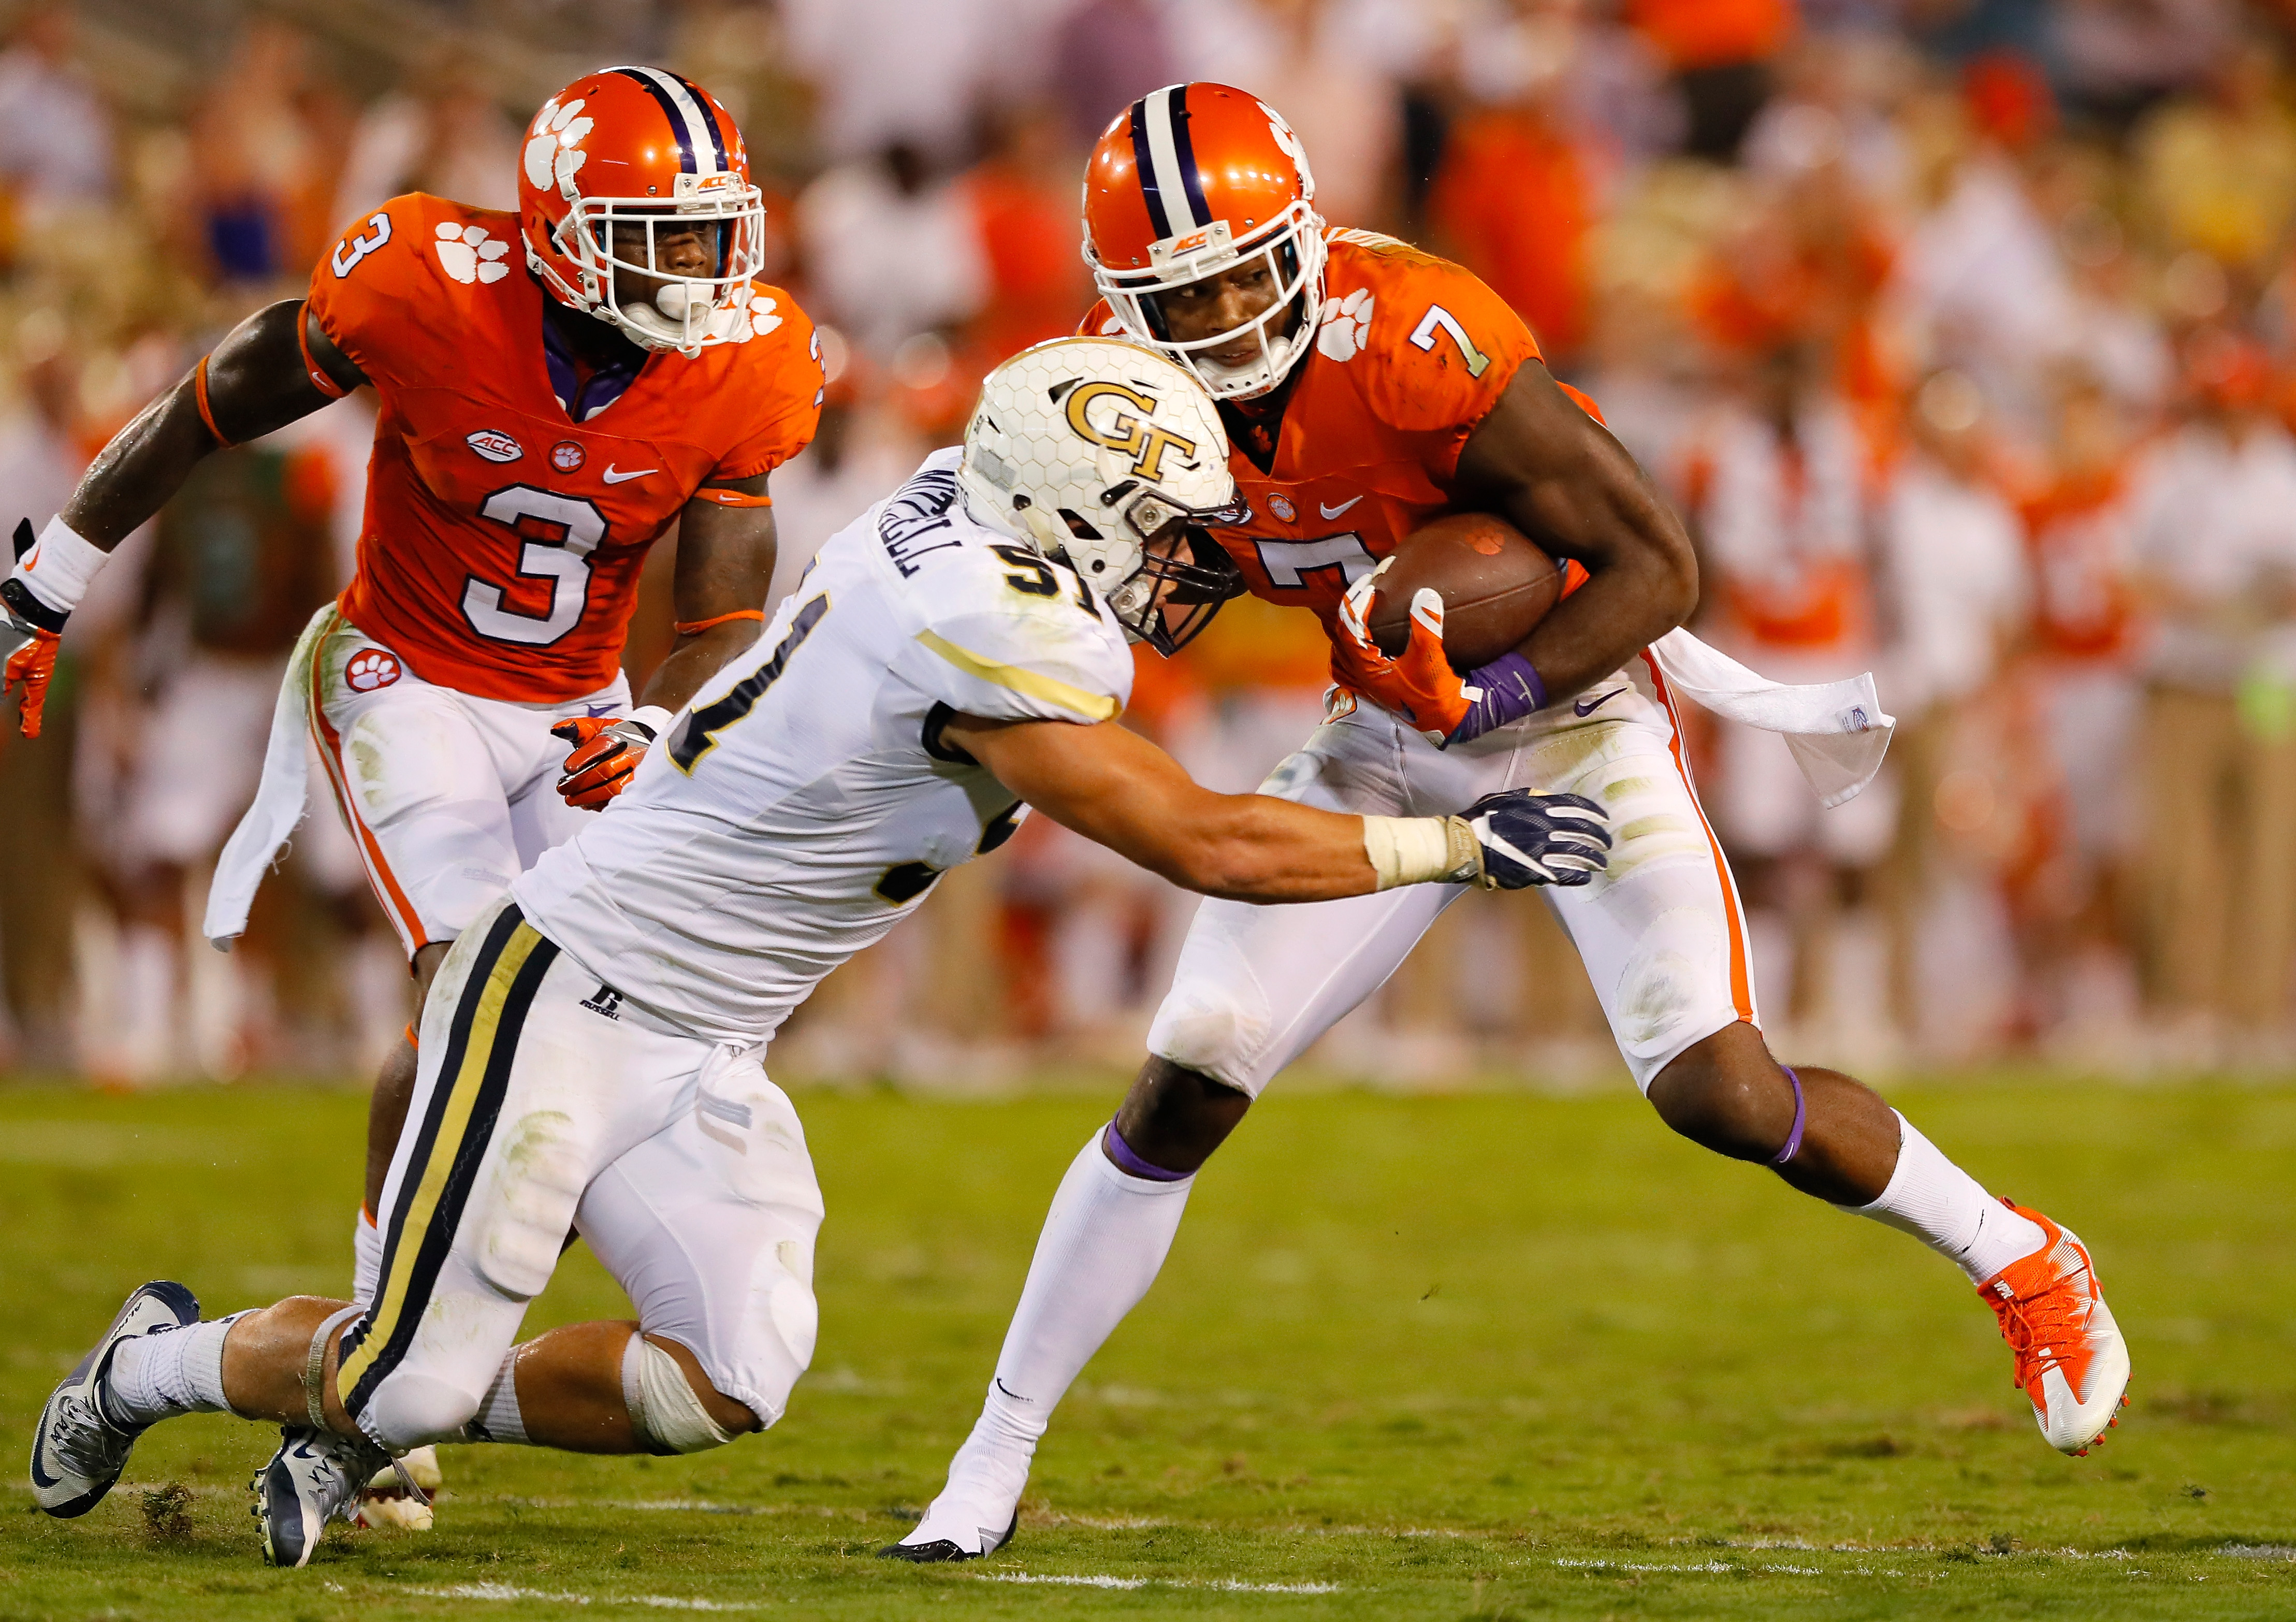 Clemson wide receiver Mike Williams (7) had 98 catches for 1,361 yards in 2016. (Getty Images)